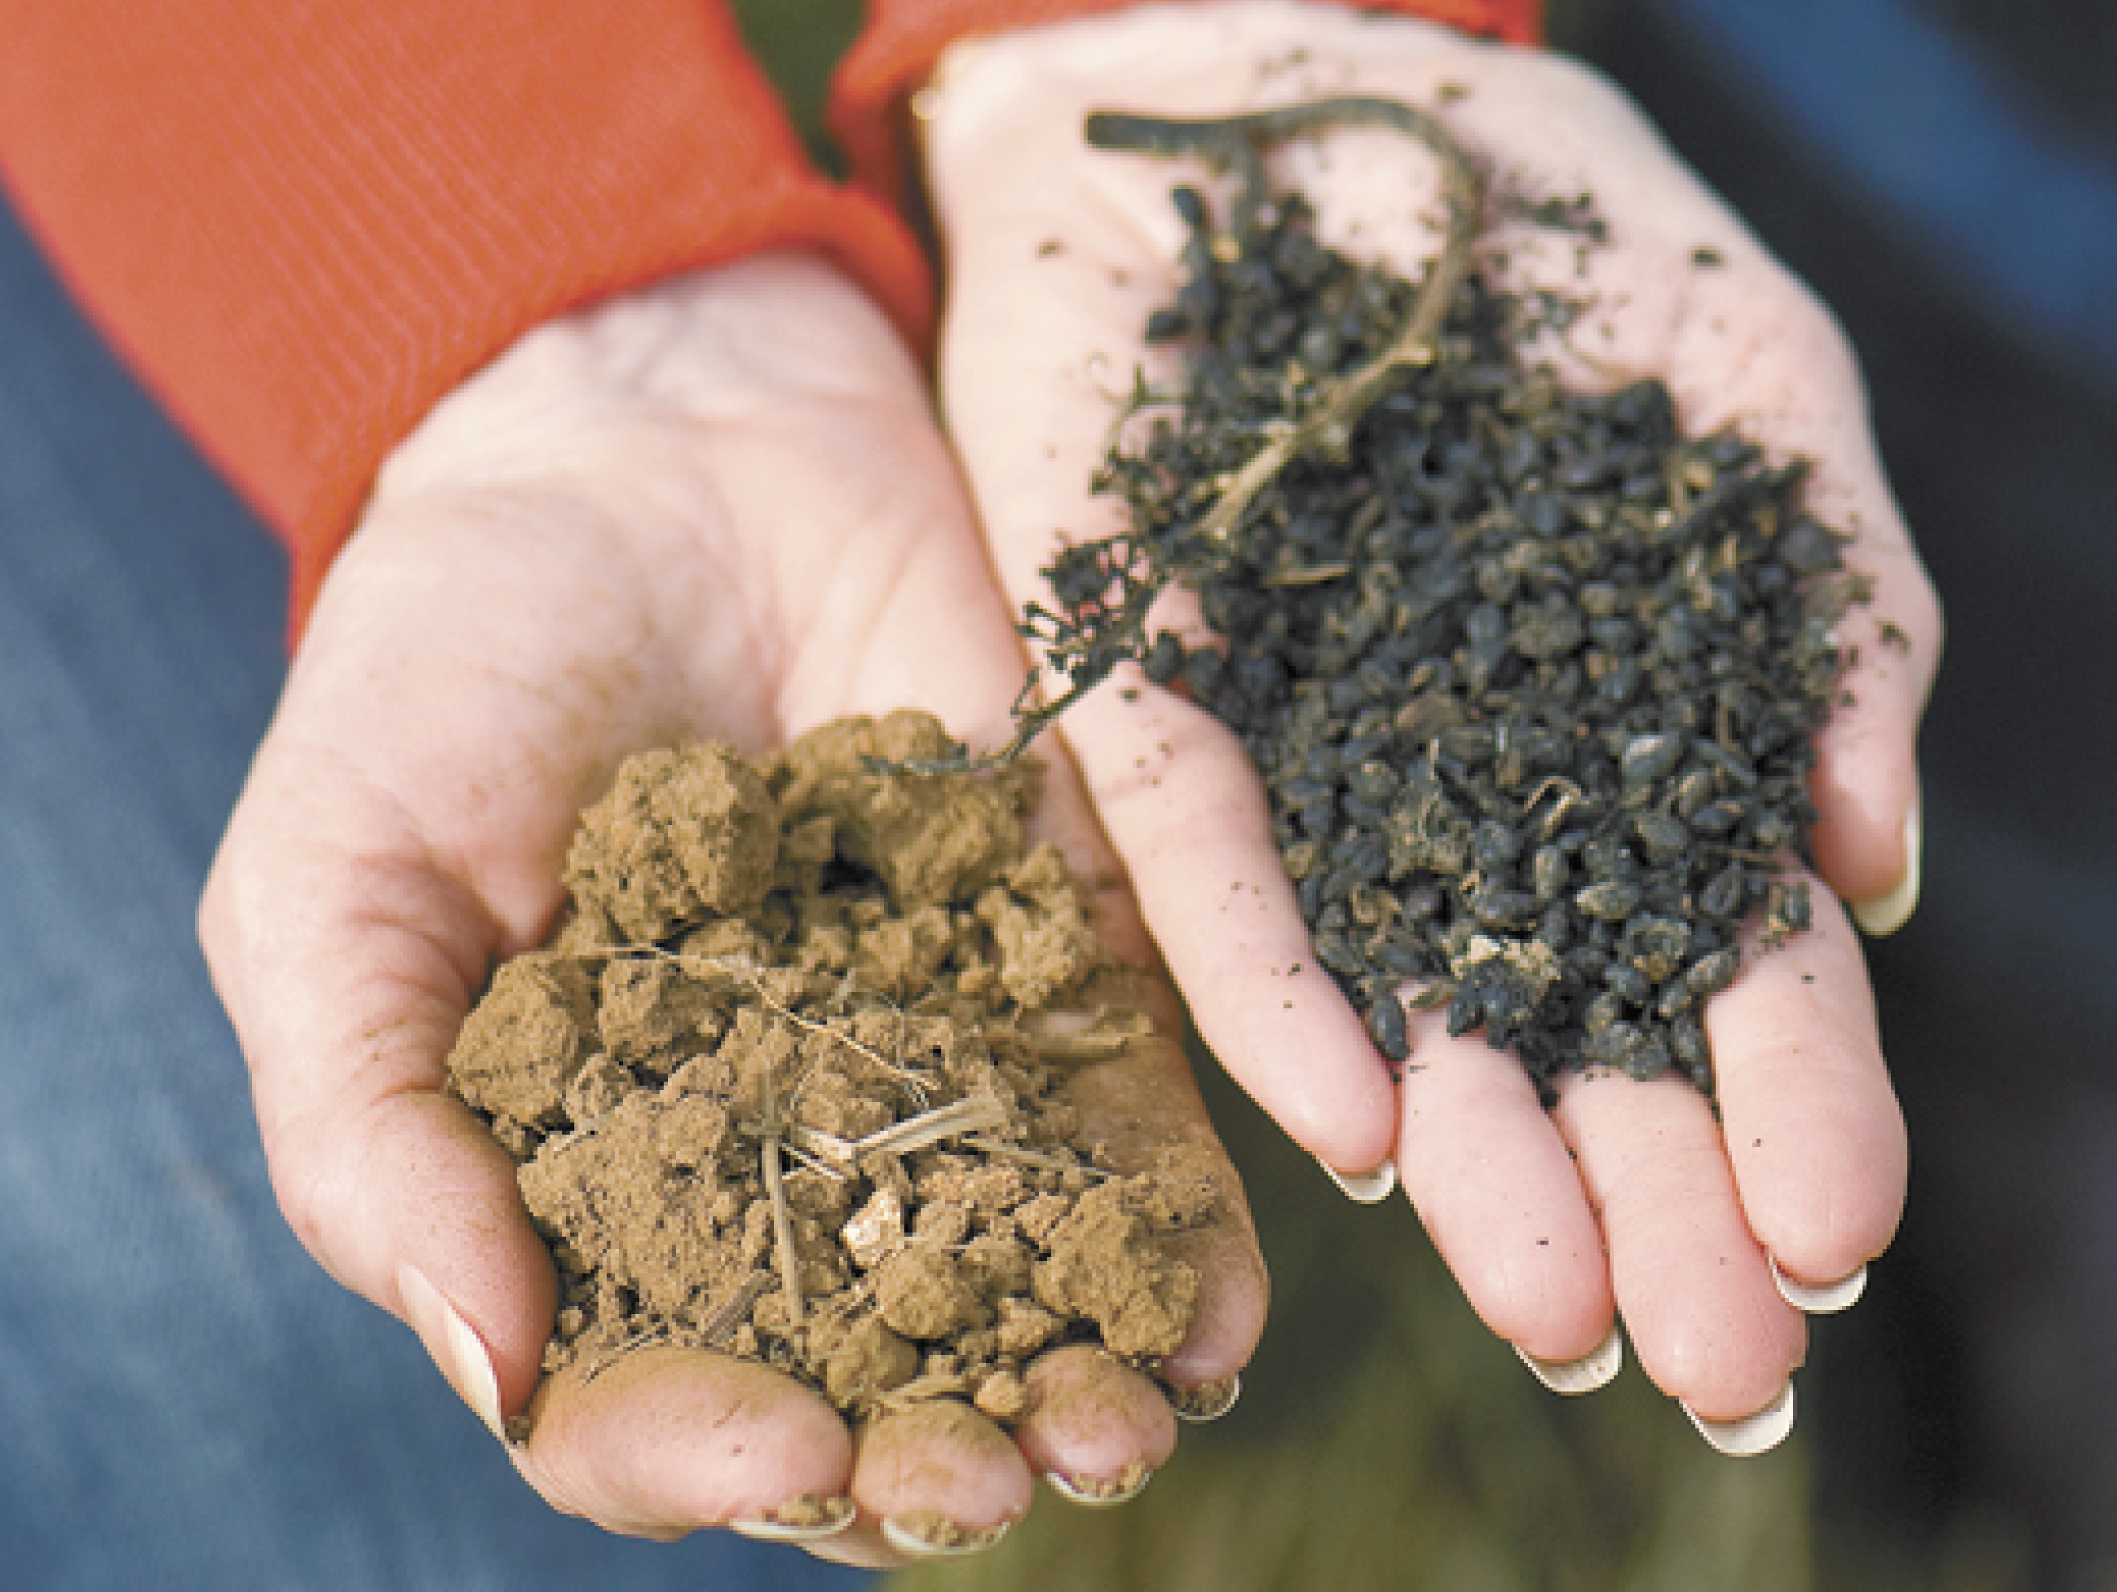 Diverse Soils - The Chehalem Mountains were formed by uplifted sedimentary seabeds, lava flows, and wind-blown silt, resulting in some of the most diverse soils and wines in Willamette Valley wine country.